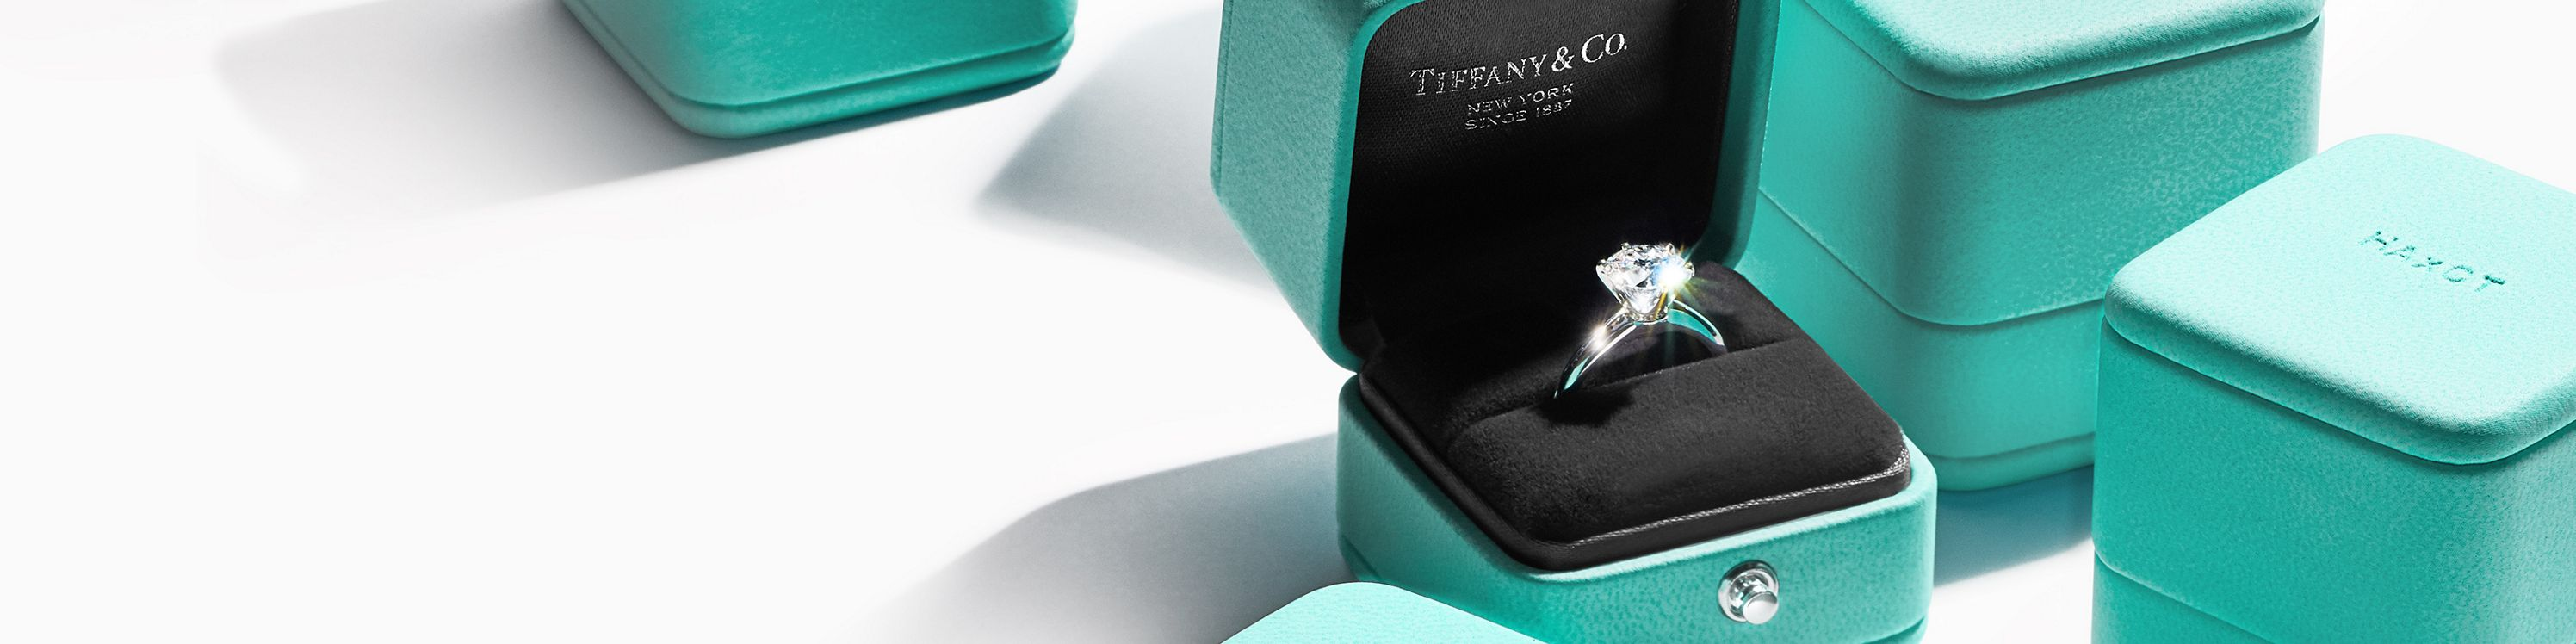 瀏覽 Tiffany & Co. 訂情戒指